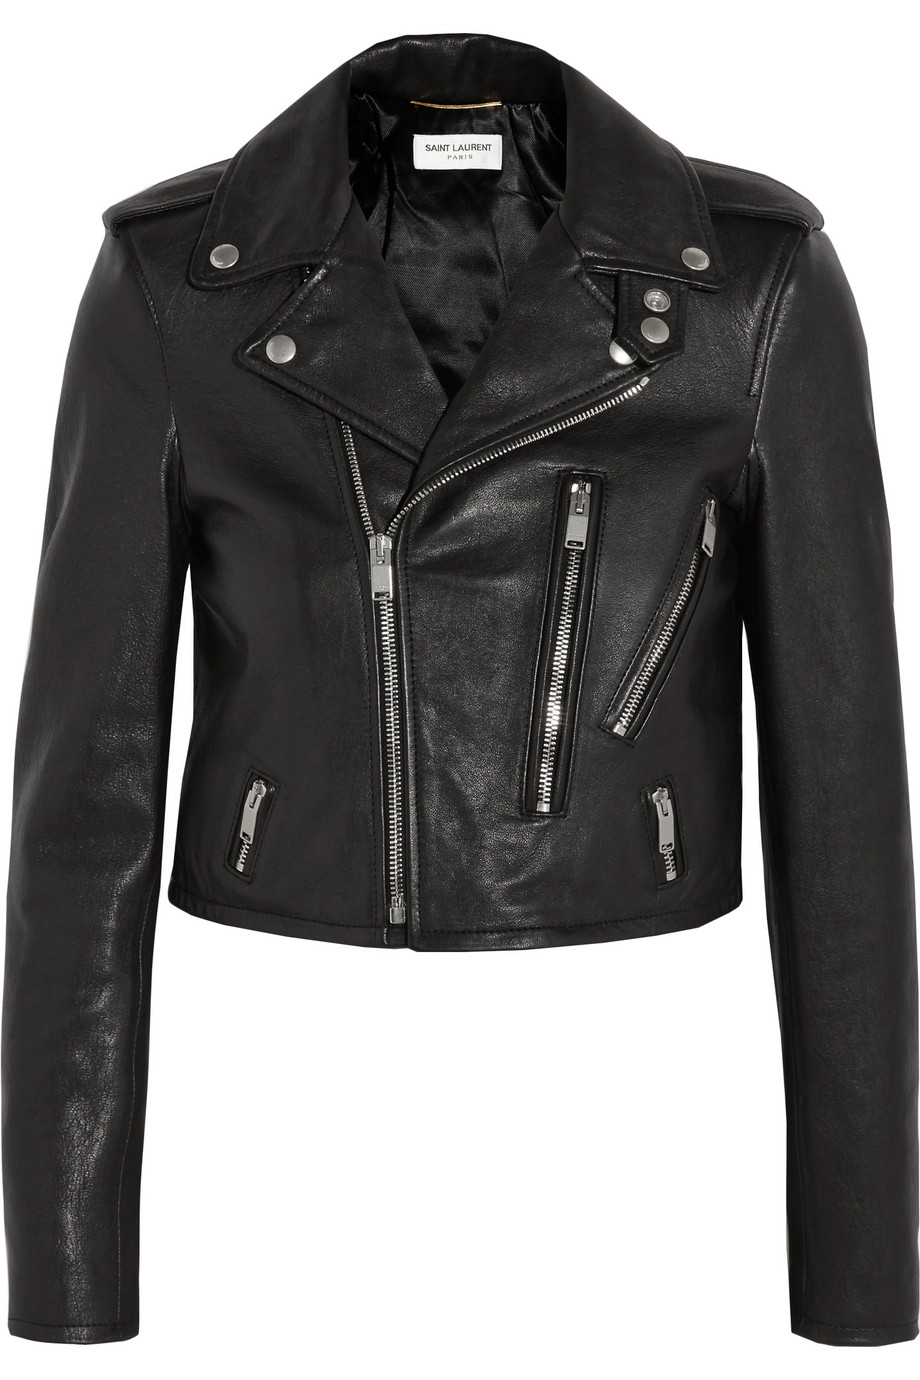 Saint Laurent Leather Biker Jacket, Black, Women's, Size: 42